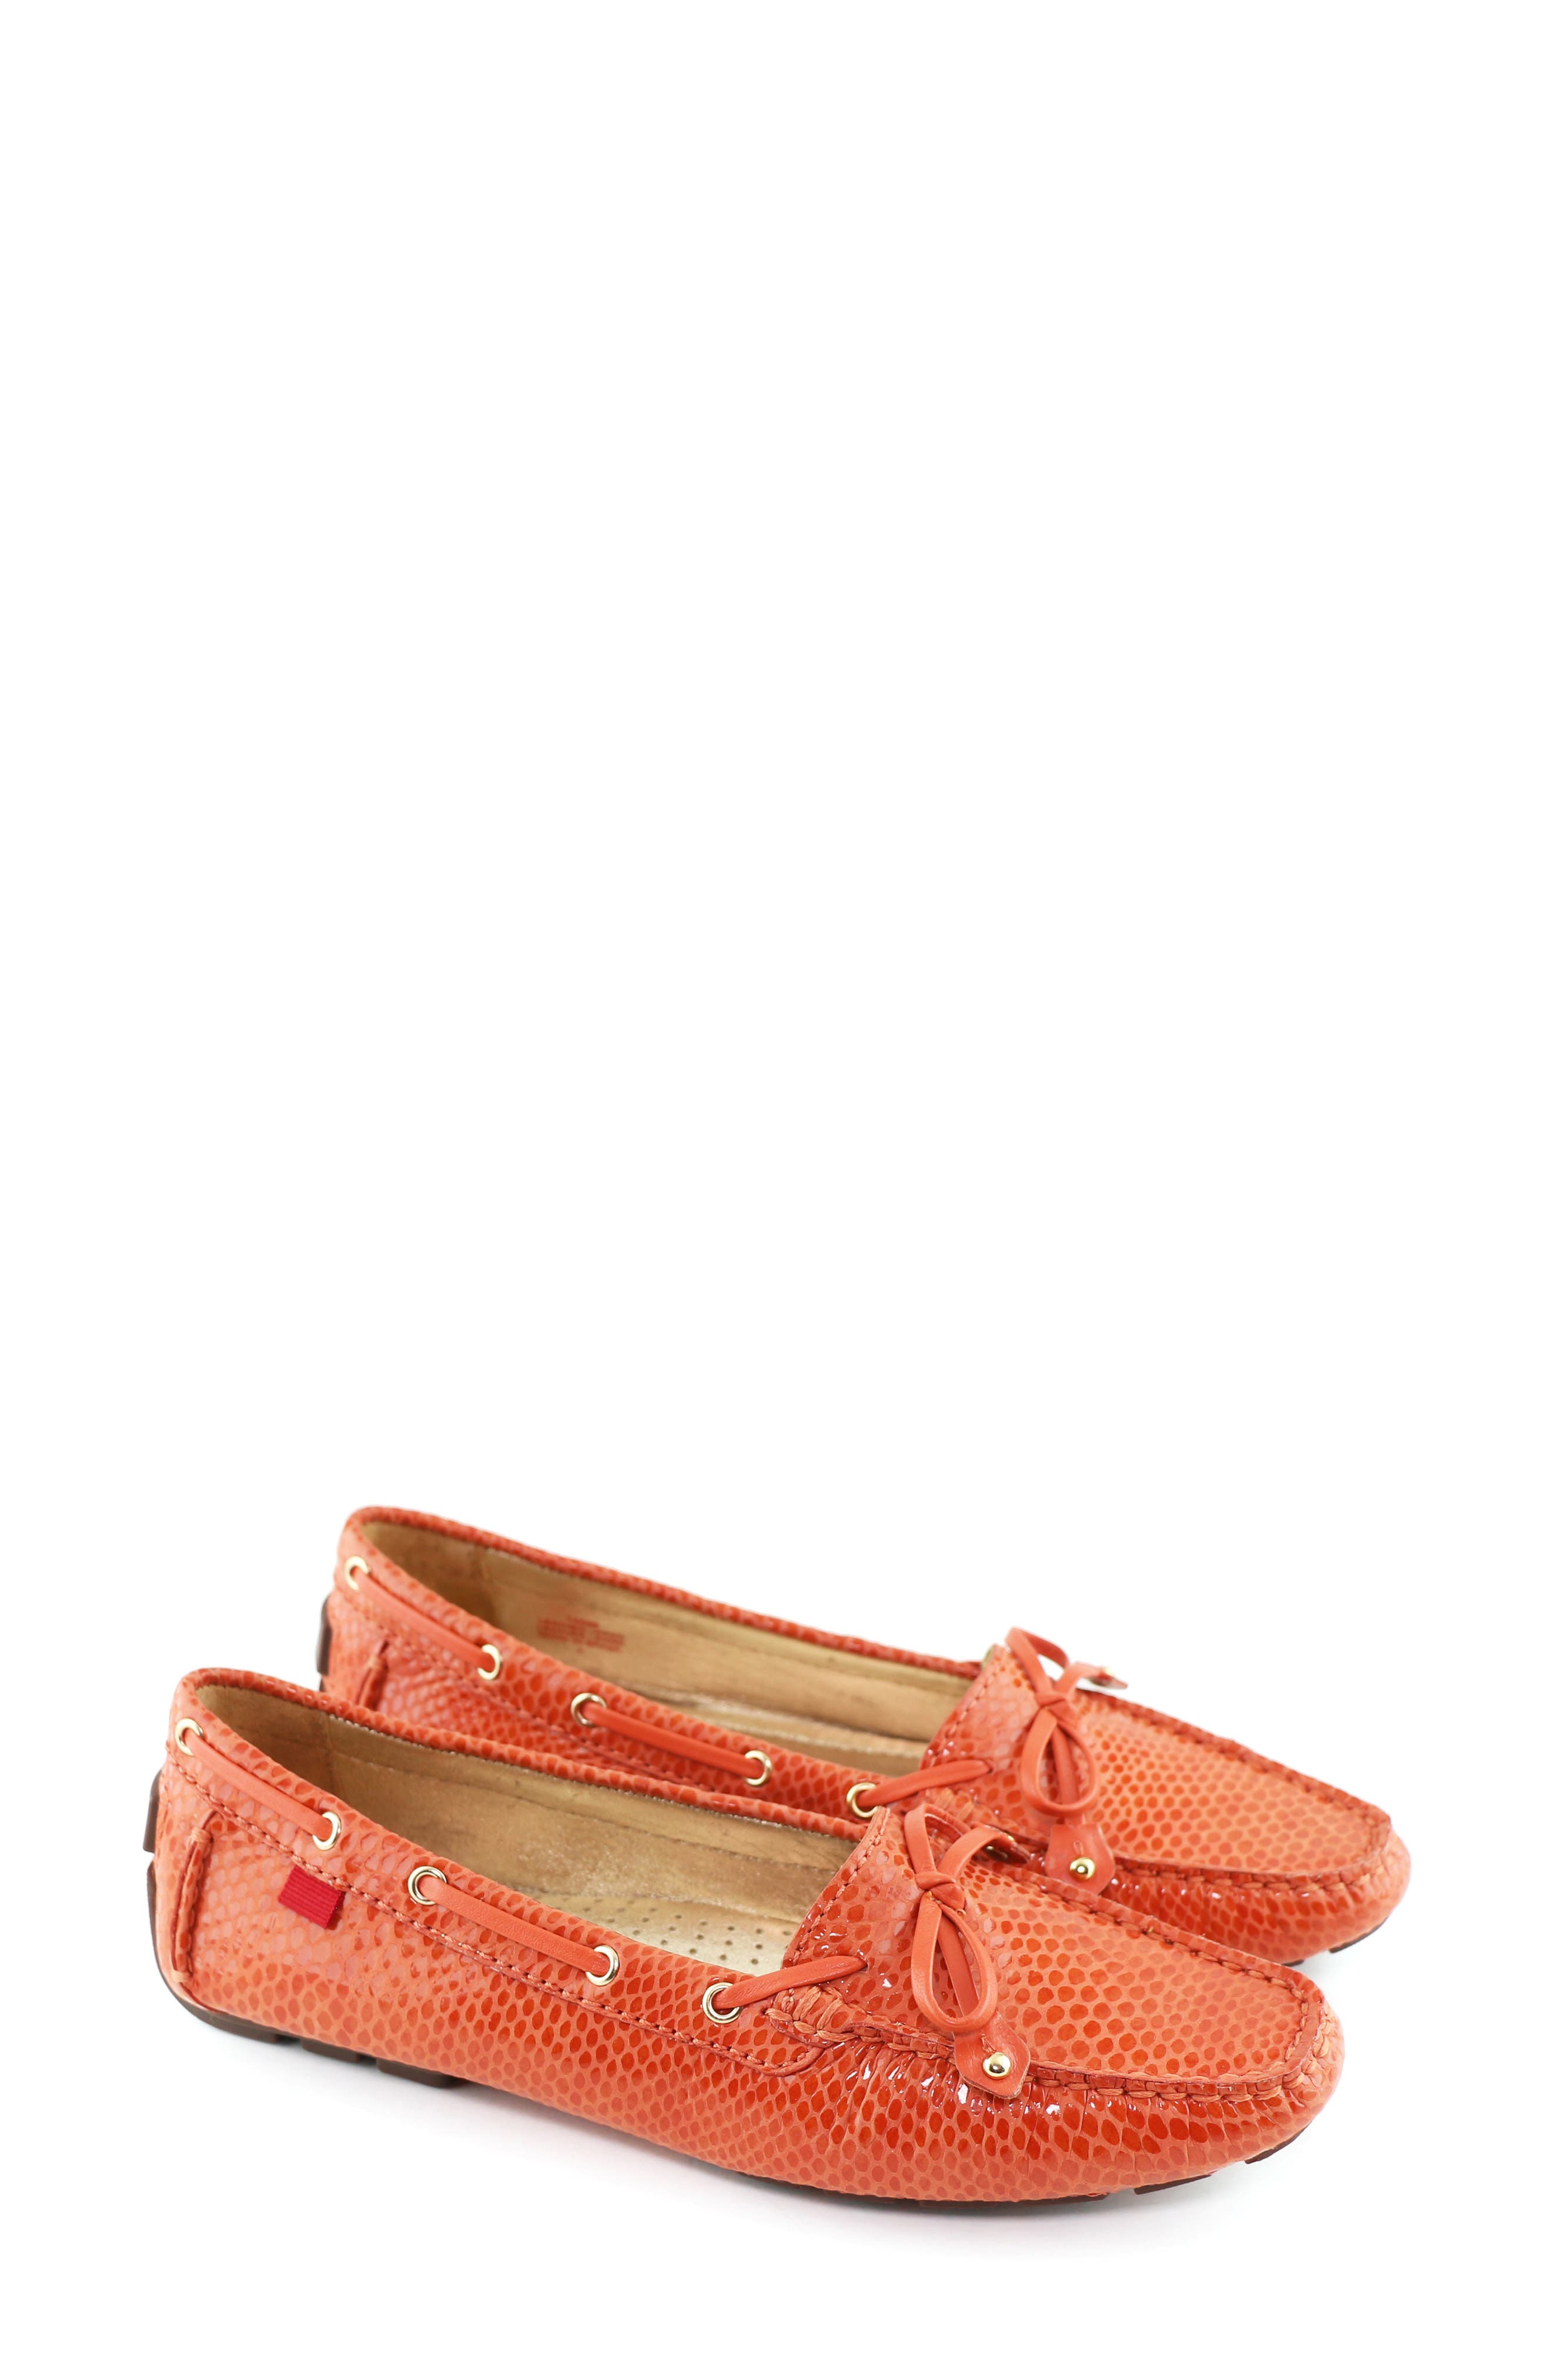 MARC JOSEPH NEW YORK,                             'Cypress Hill' Loafer,                             Alternate thumbnail 8, color,                             CORAL SNAKE PRINT LEATHER